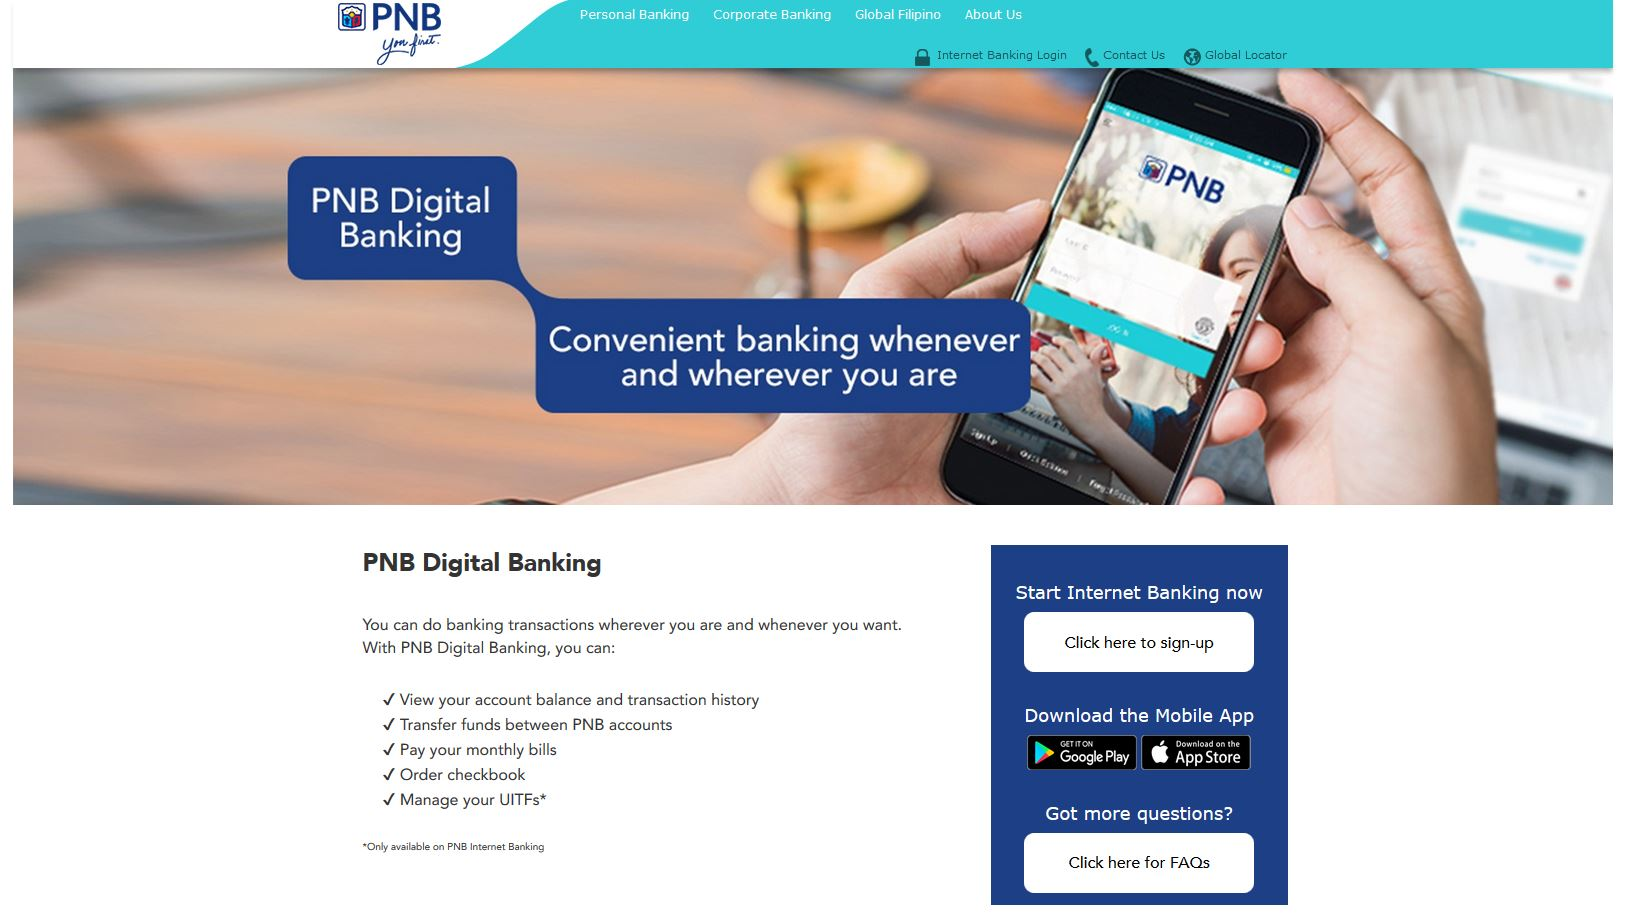 PNB-Digital-Banking-Page